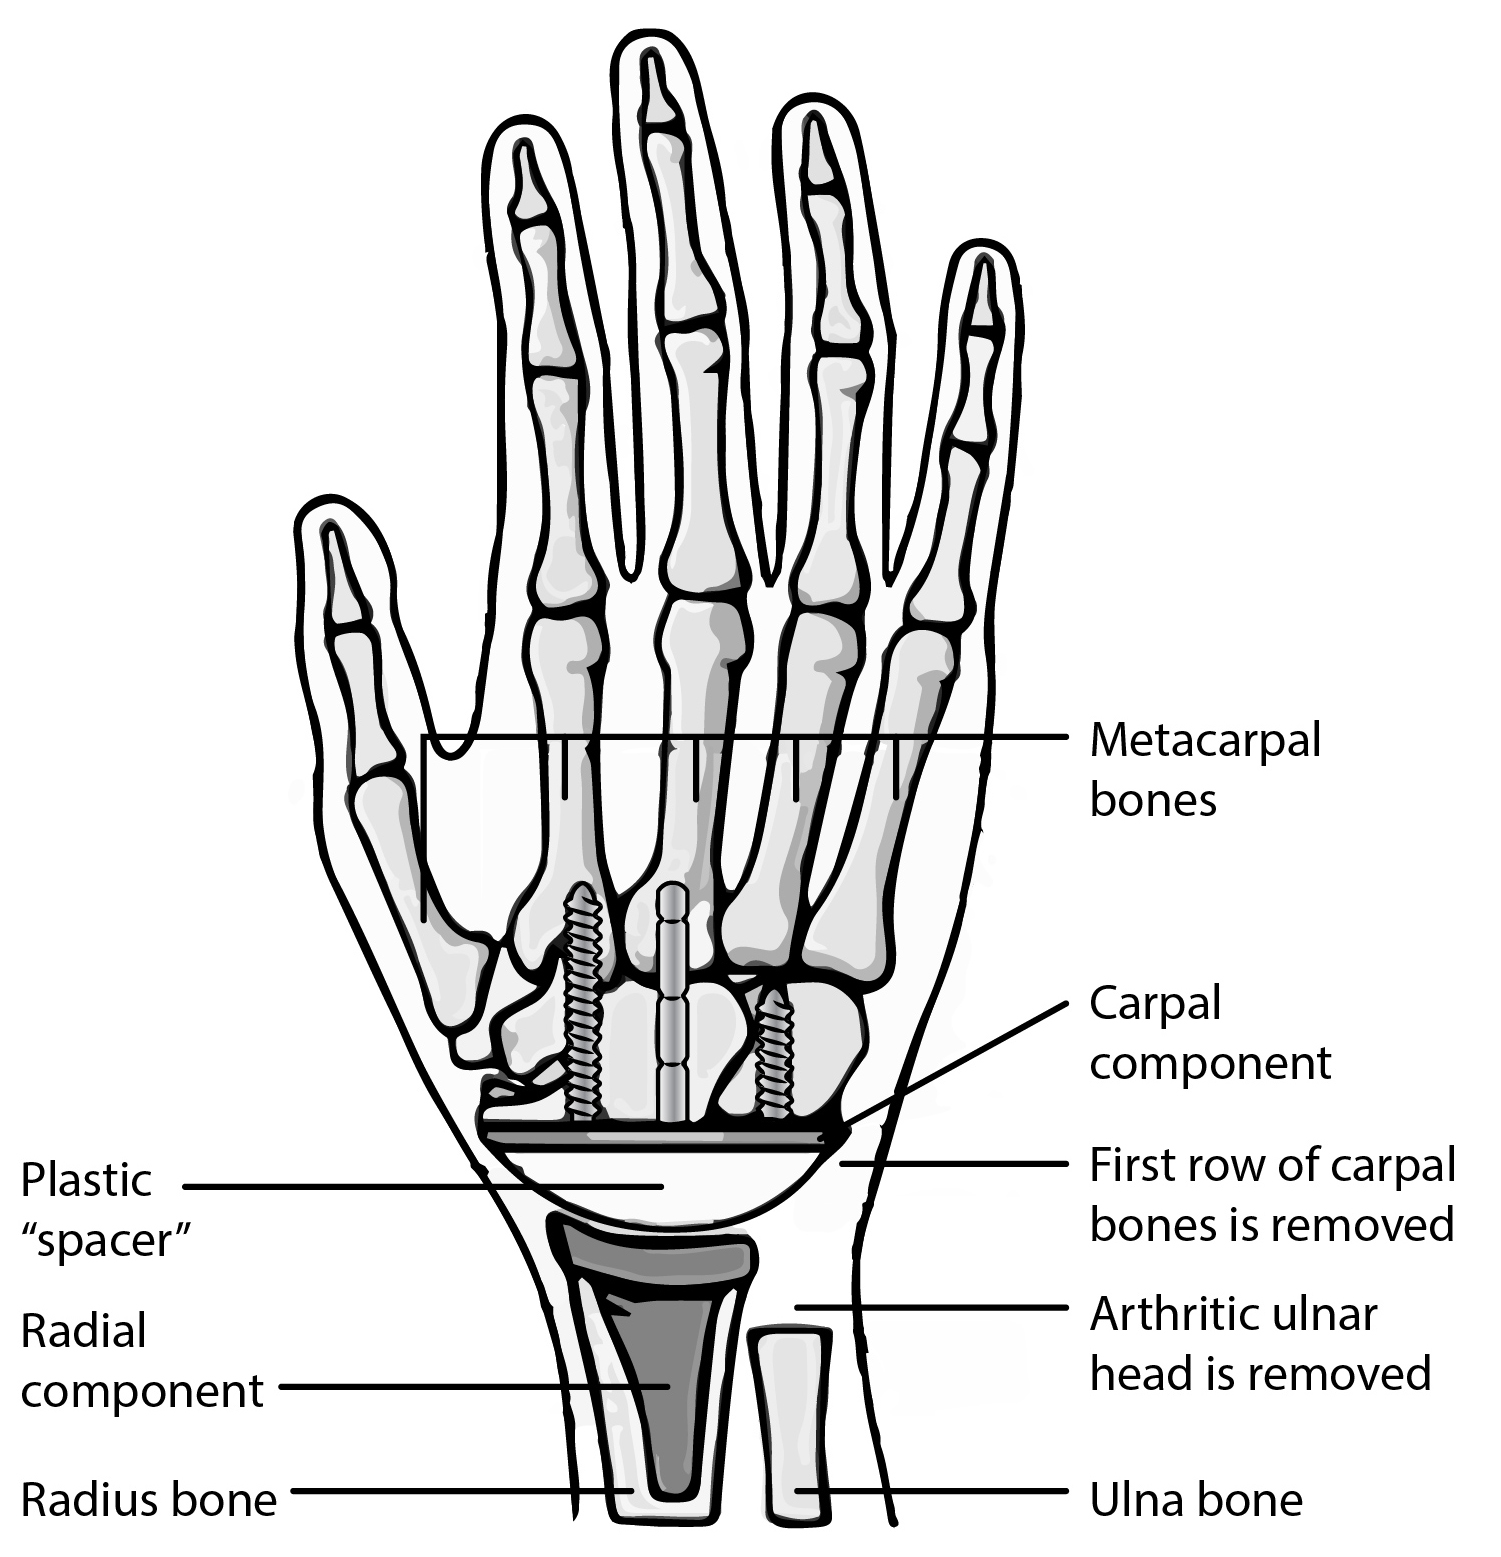 Components of a wrist arthroplasty